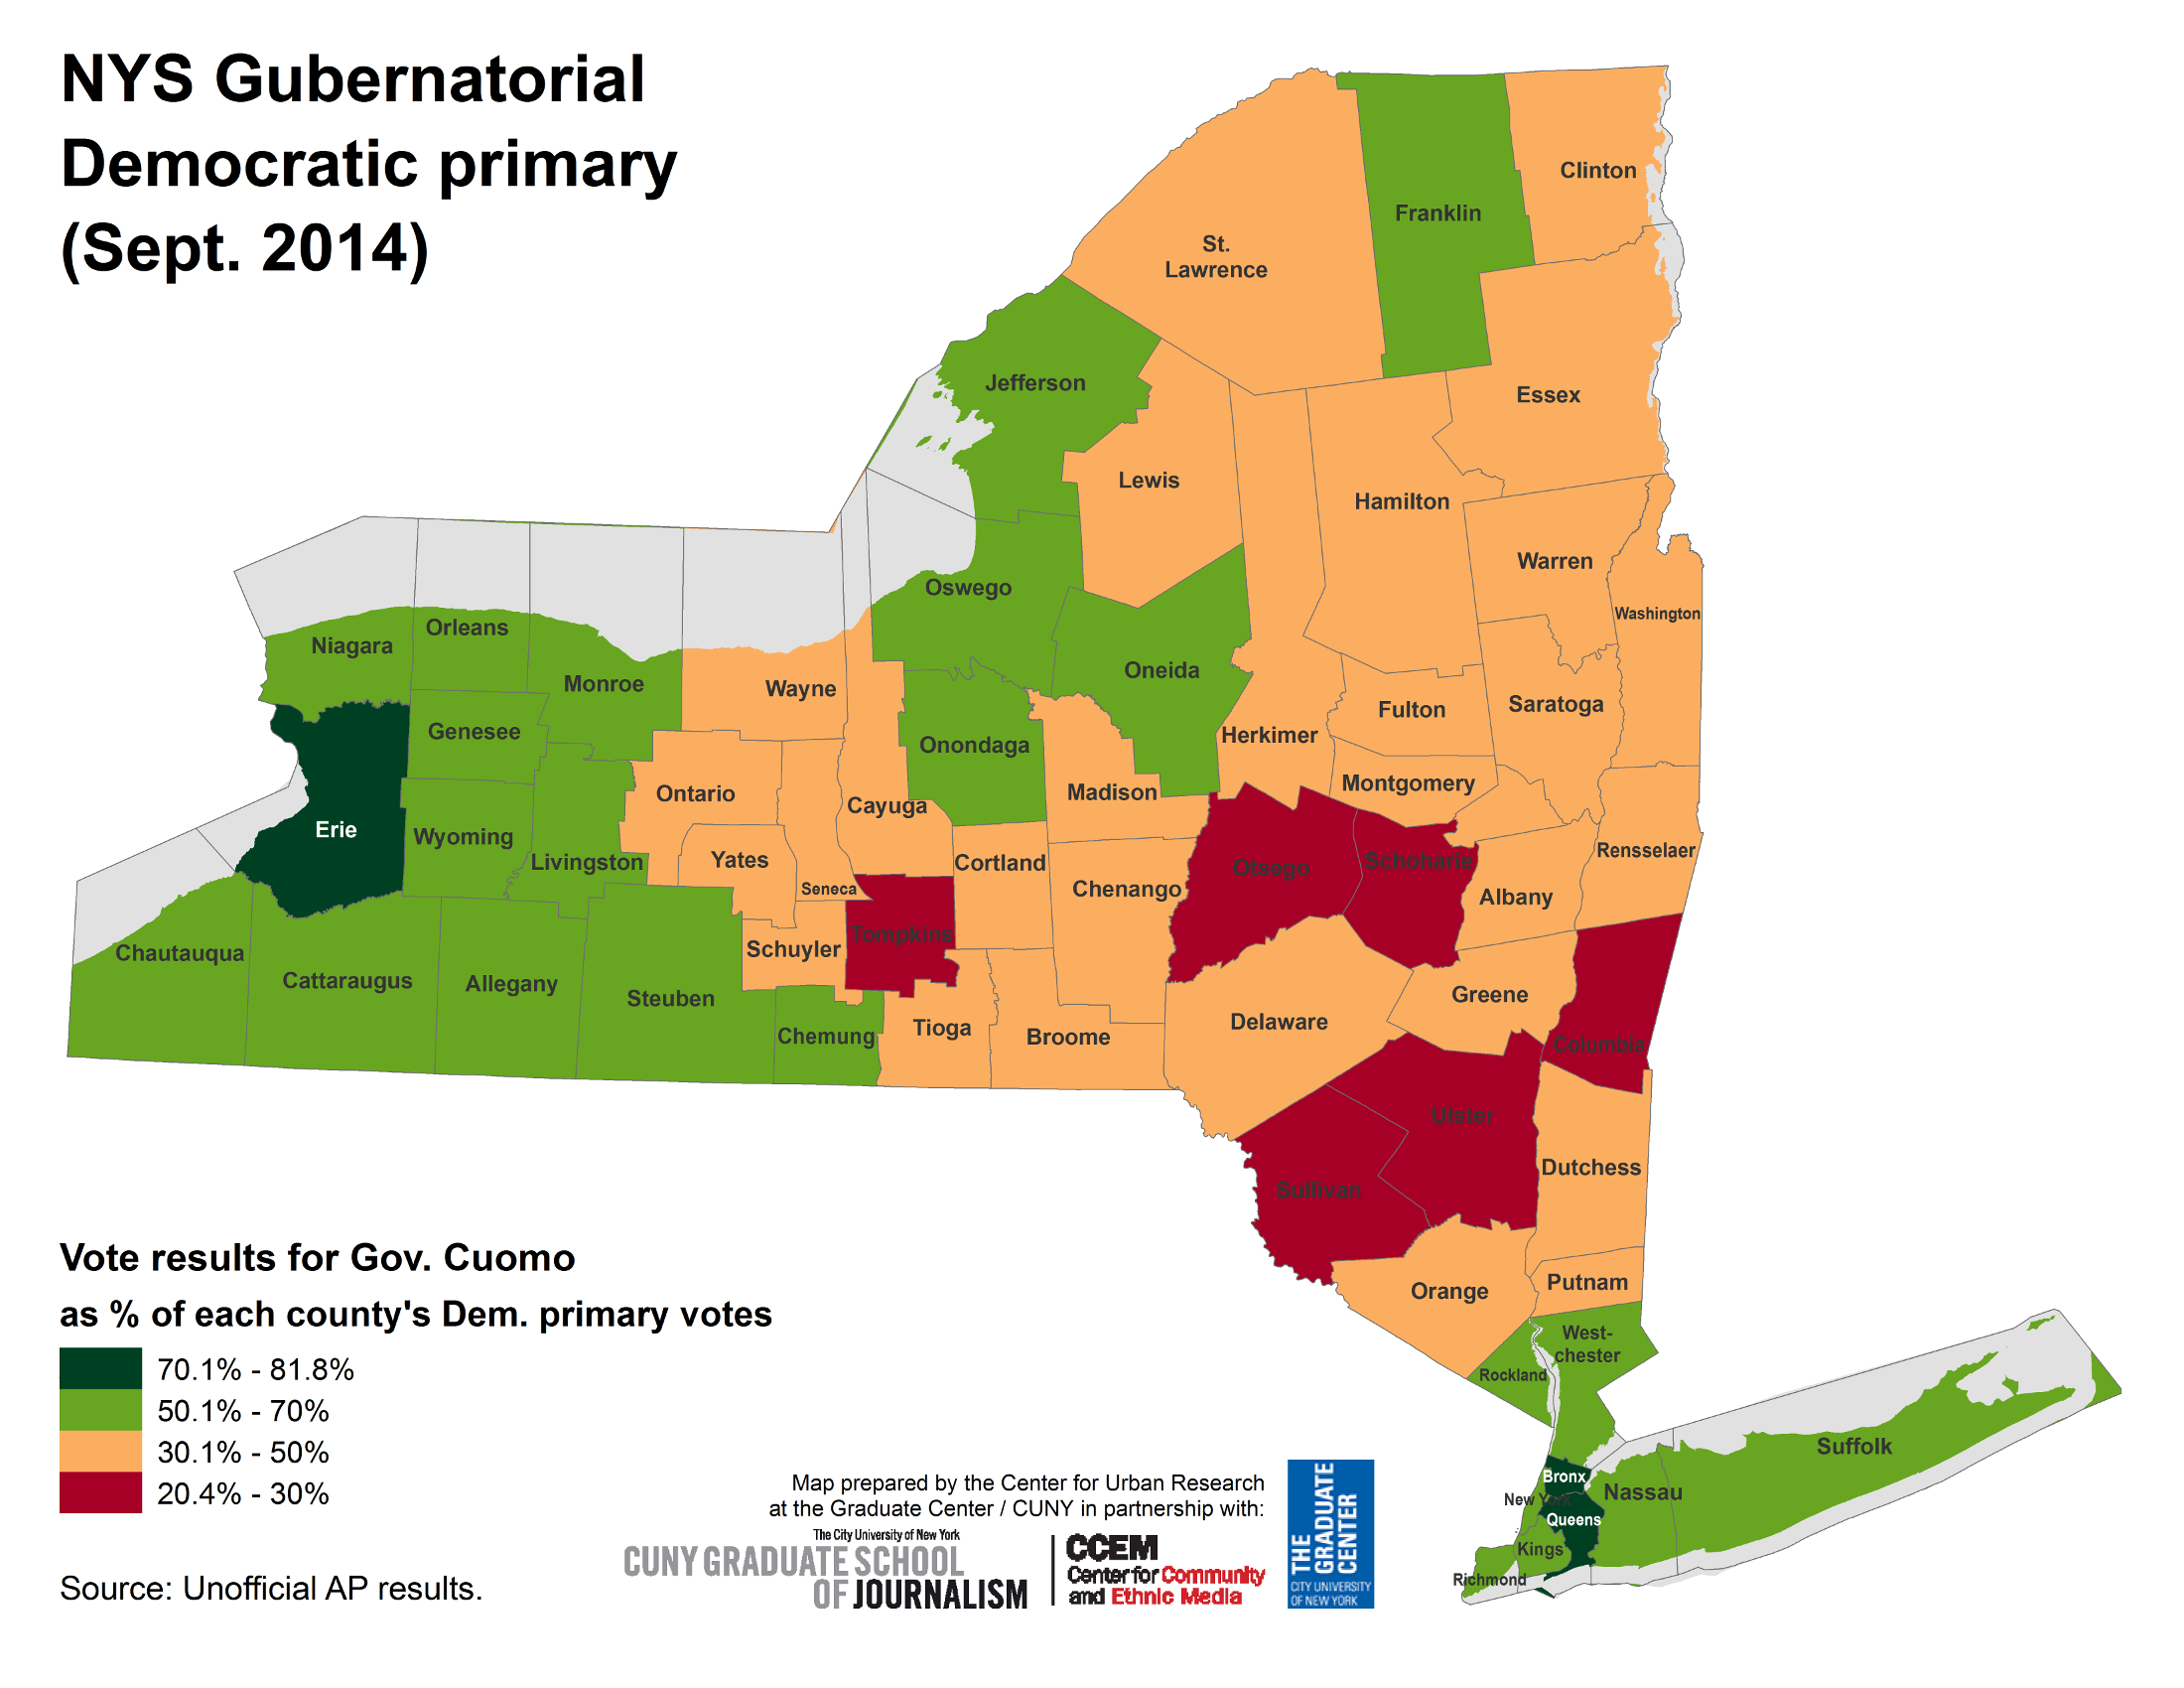 City Map Of New York State.Nyc Election Atlas Maps